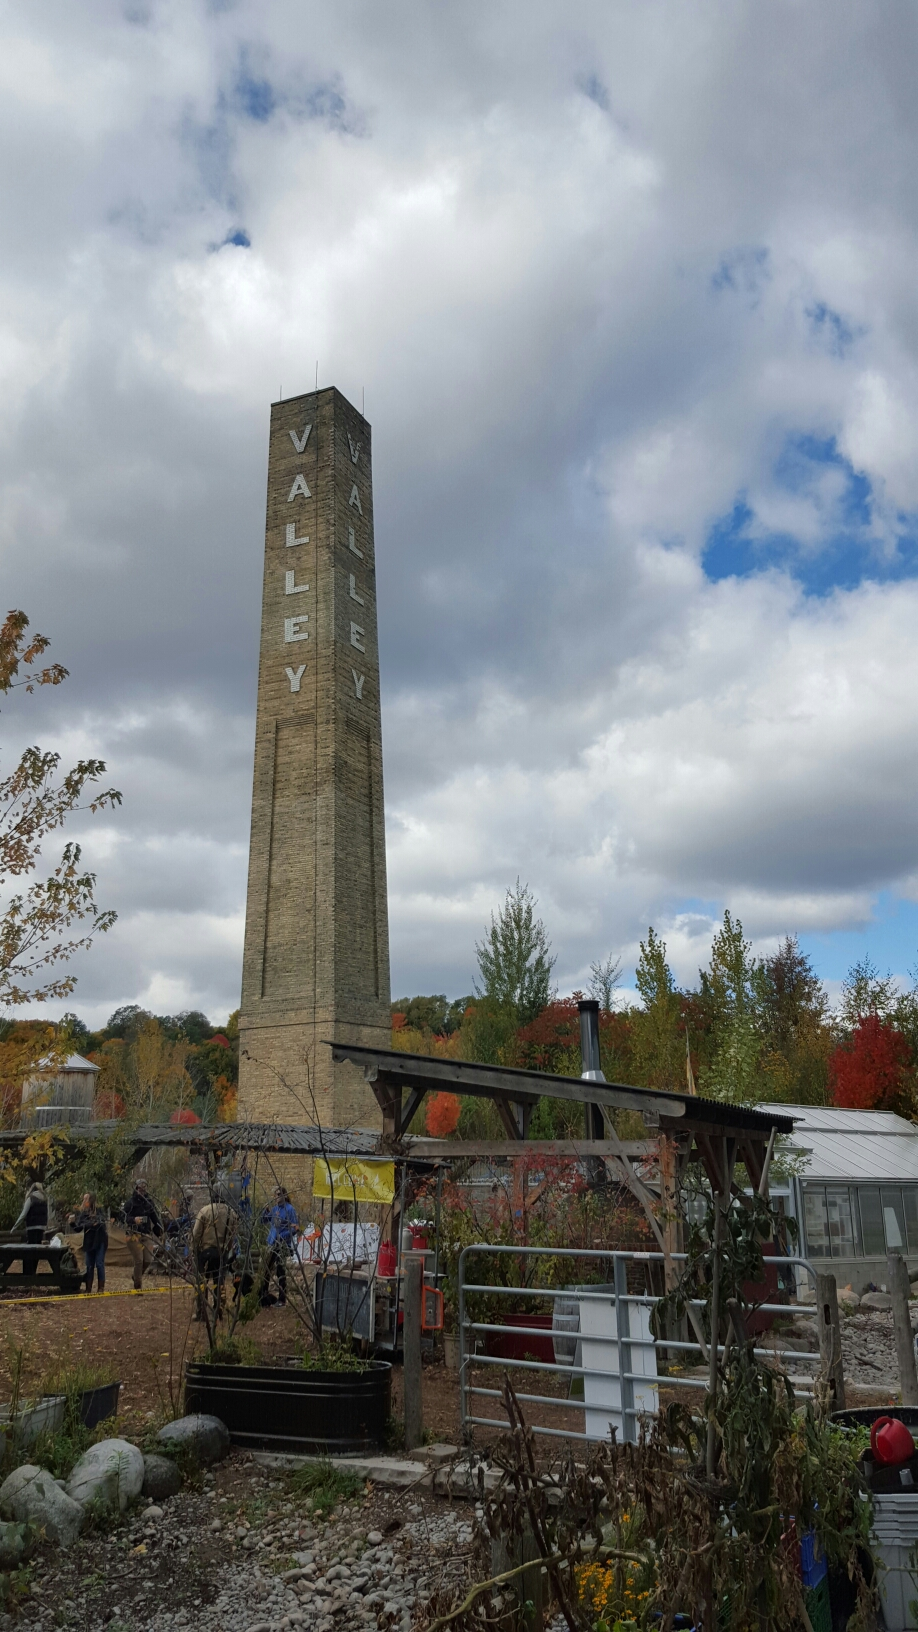 Chimney at the Don Valley Brickworks, Toronto, Canada.